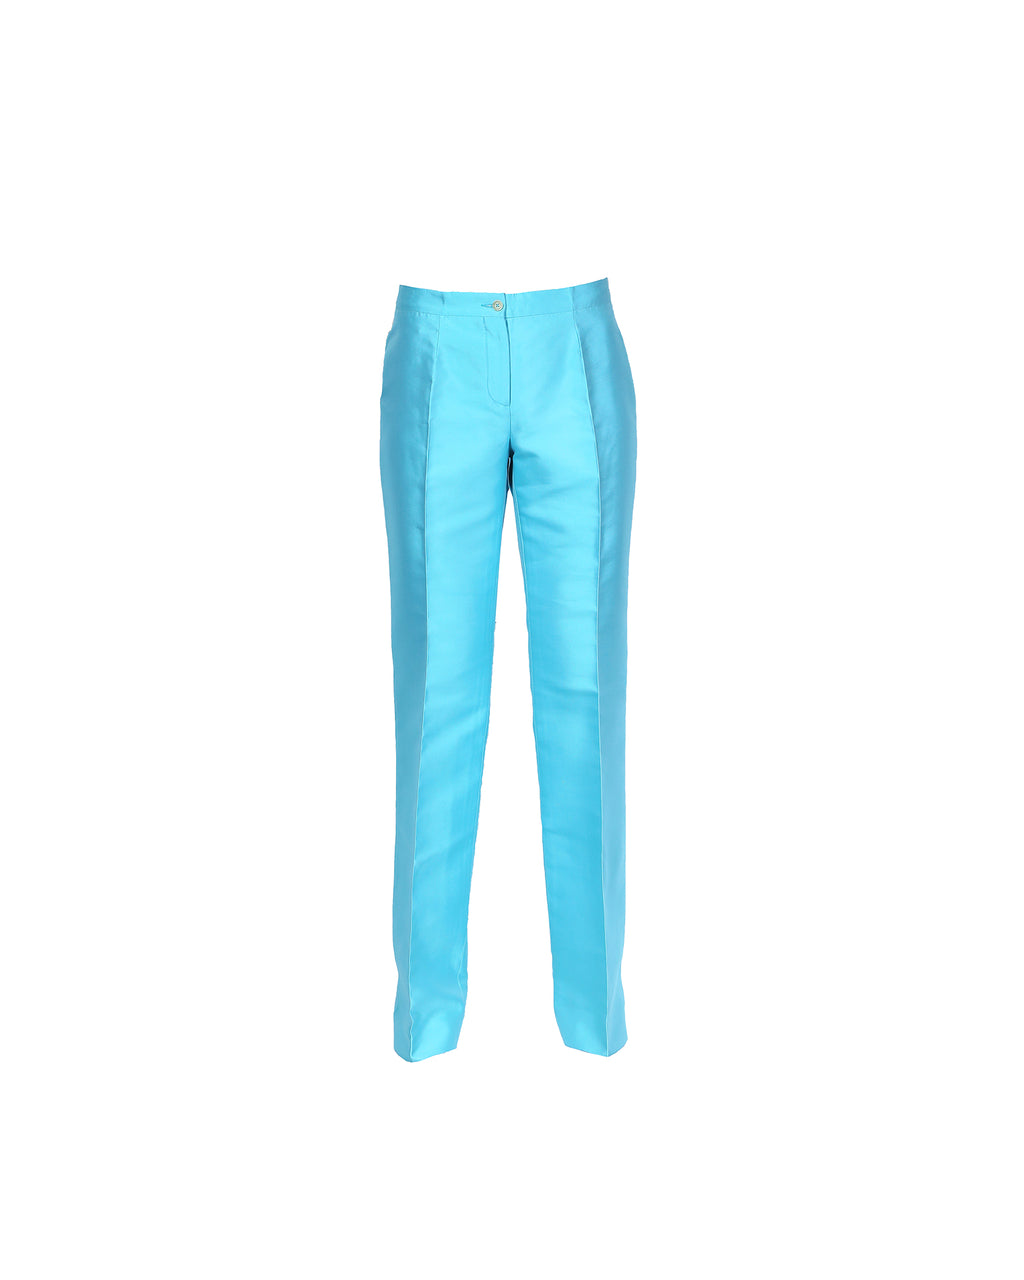 Celine Silk Trousers in Blue Size 38 (EU)